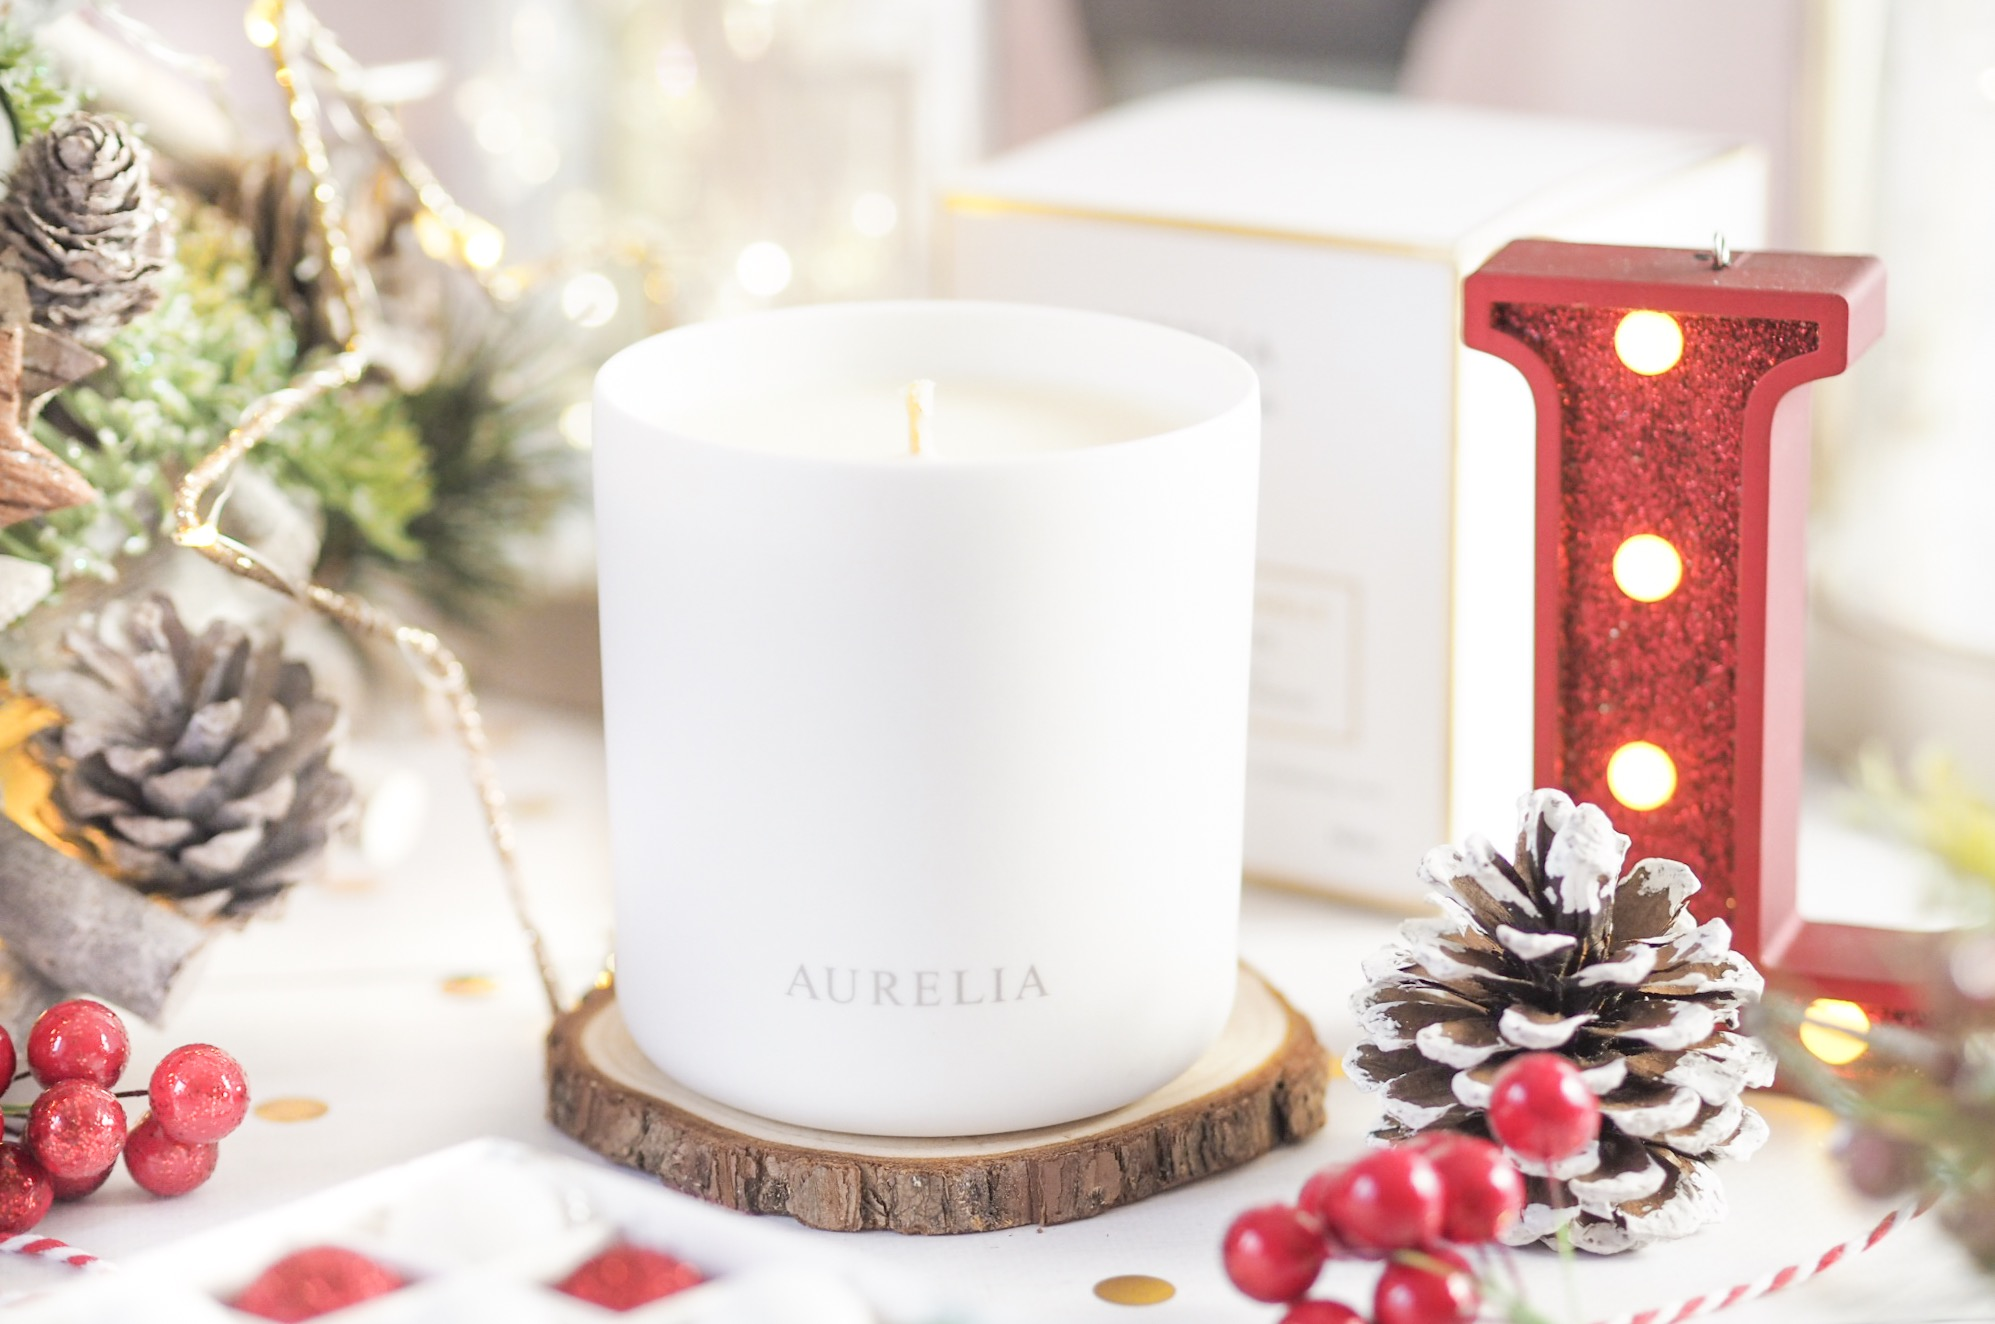 Aurelia Peacefulness Candle